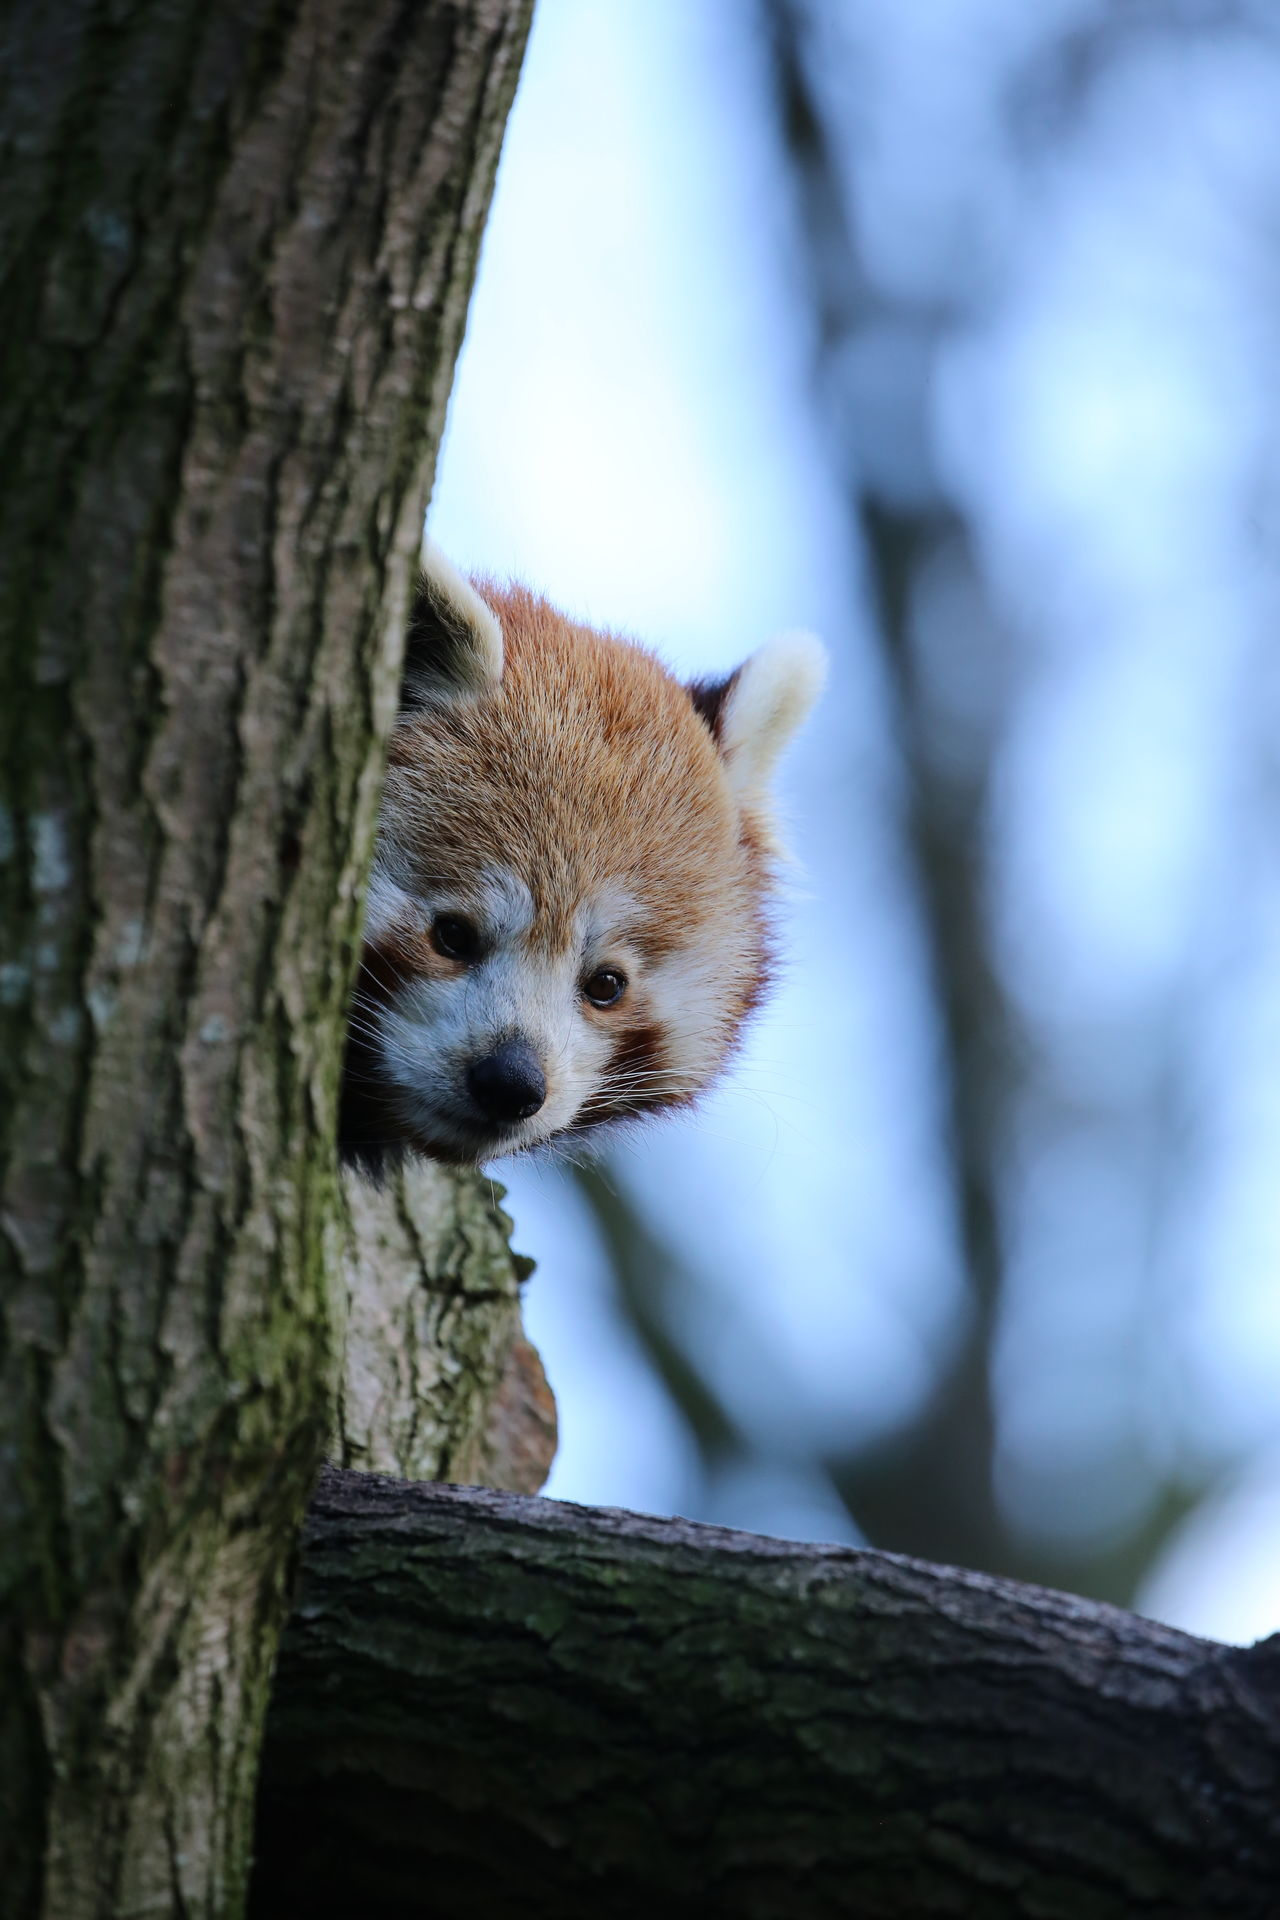 Animal Themes Animal Wildlife Animals In The Wild Day Focus On Foreground Mammal Nature No People One Animal Outdoors Red Panda Sneaking Tree Tree Trunk